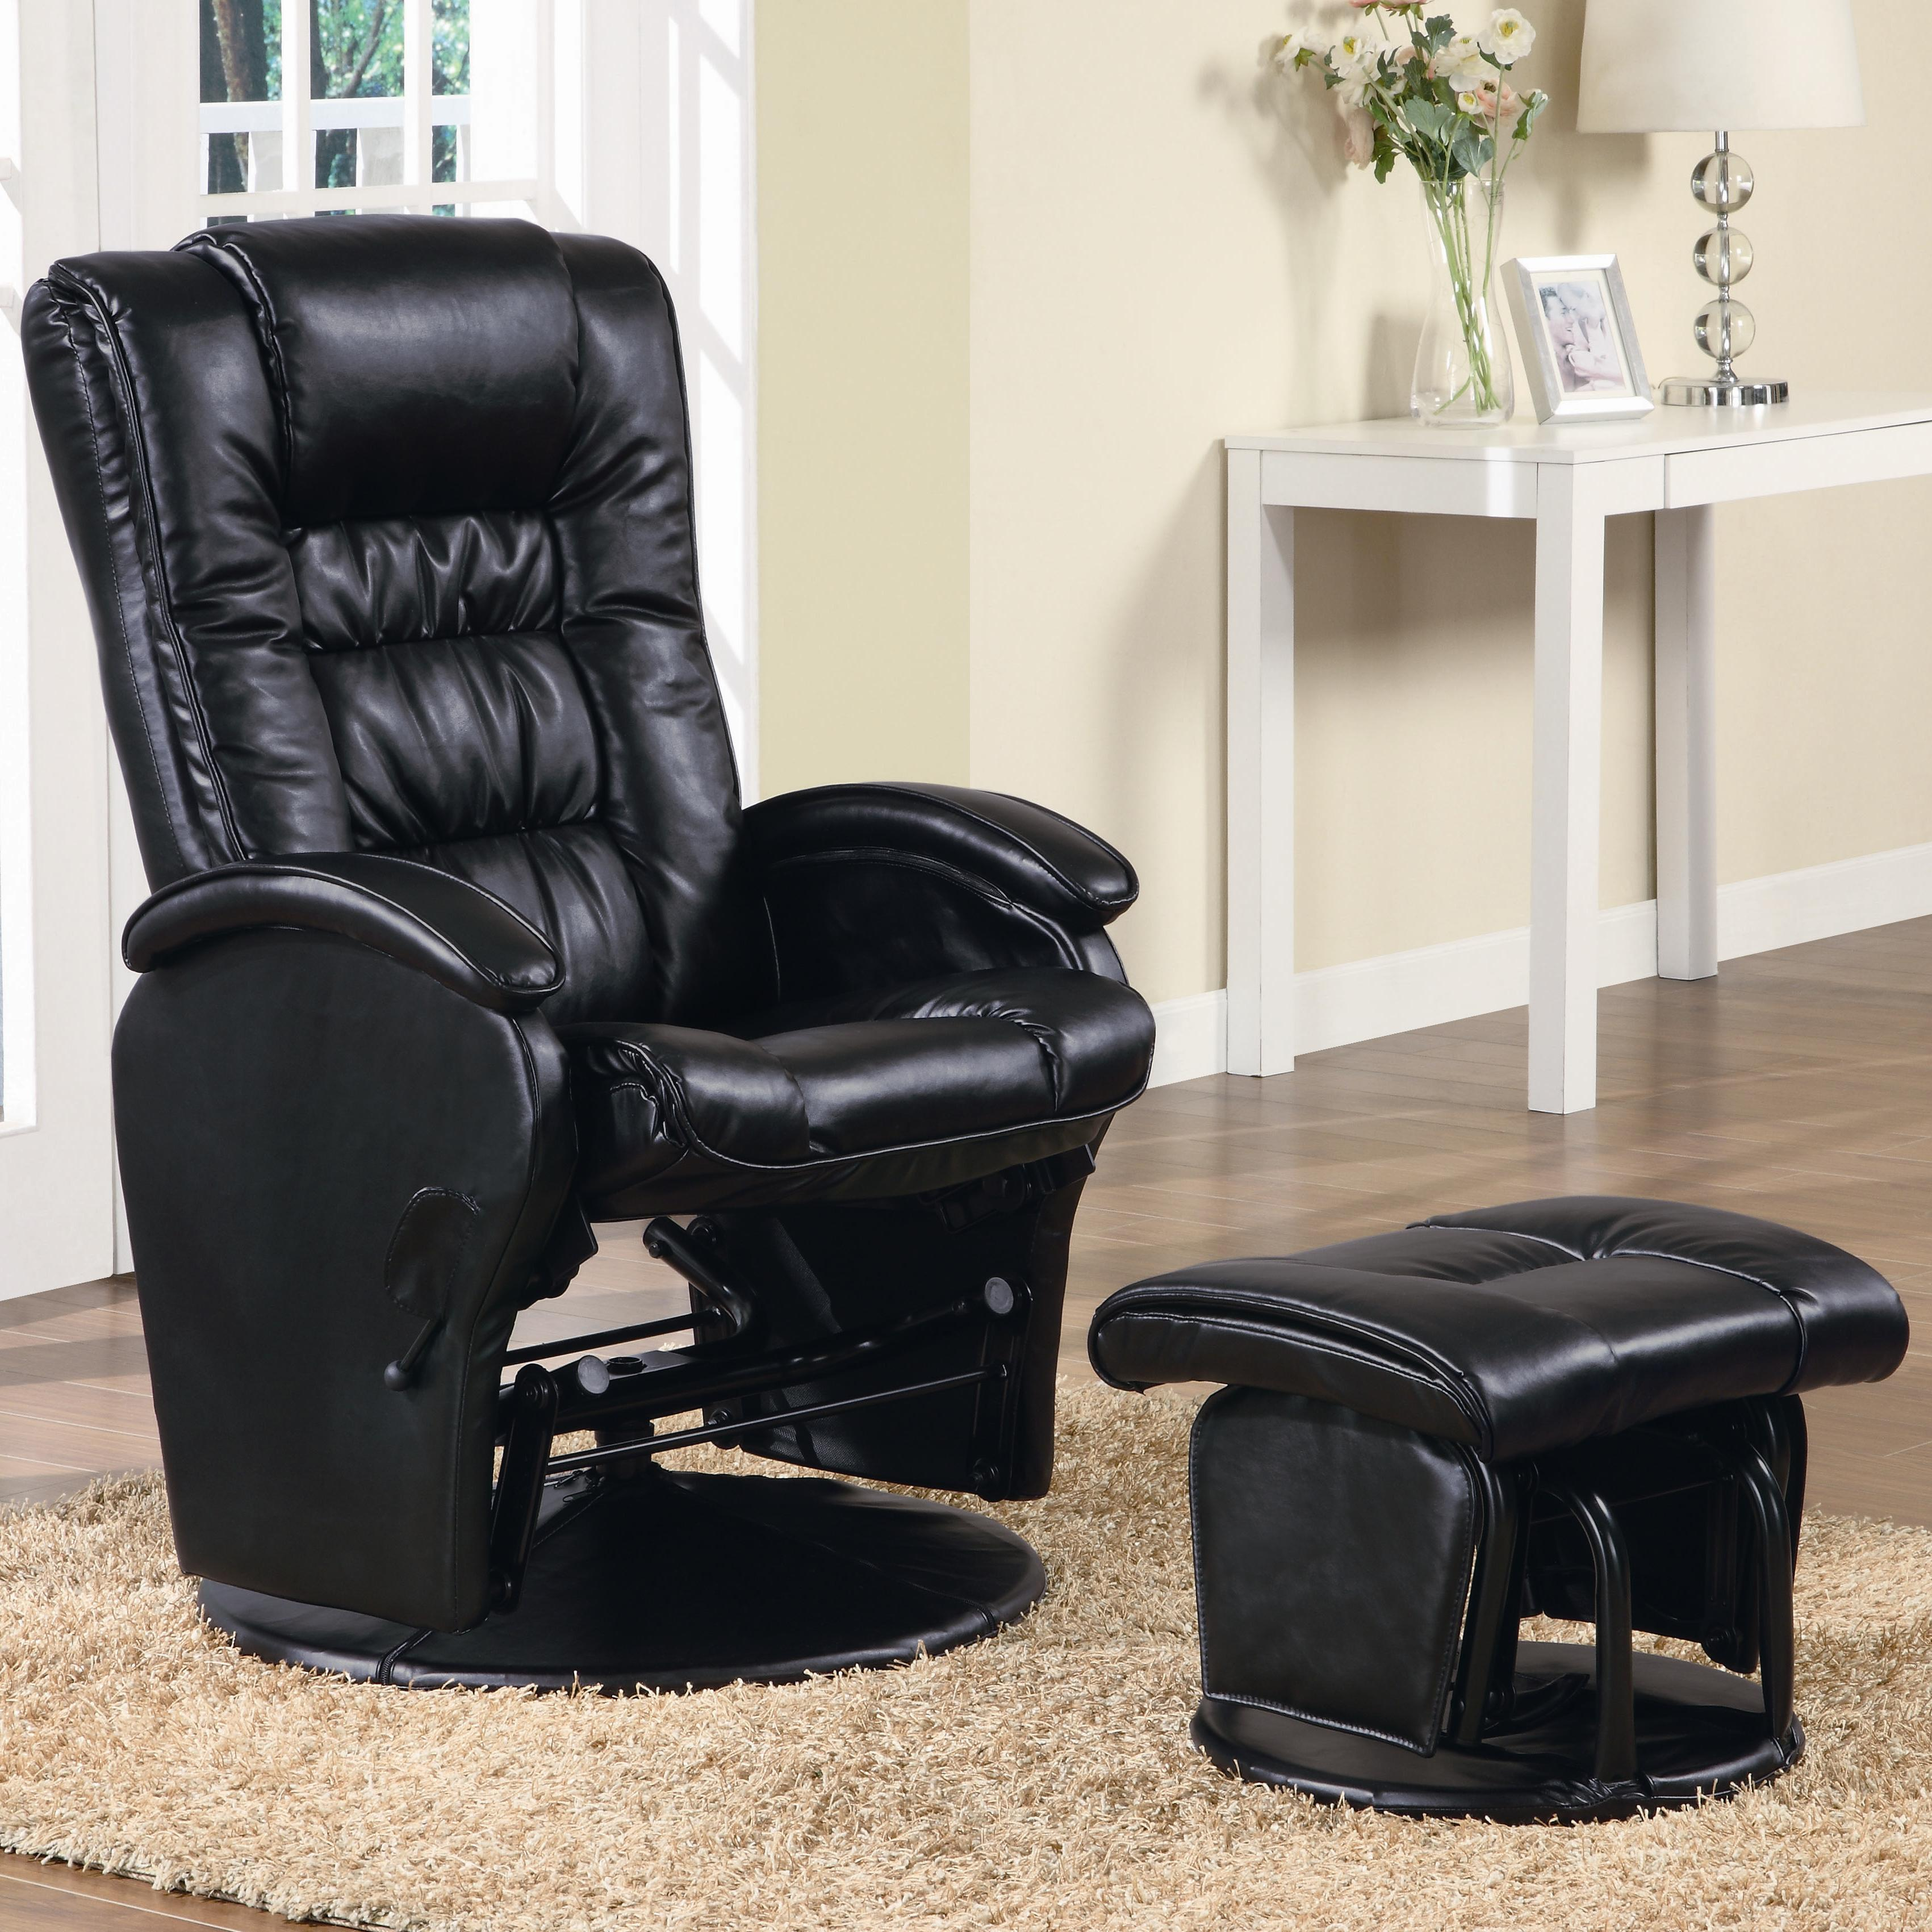 Pleasing Recliners With Ottomans Casual Leather Like Glider With Matching Ottoman By Fine Furniture At Del Sol Furniture Ibusinesslaw Wood Chair Design Ideas Ibusinesslaworg